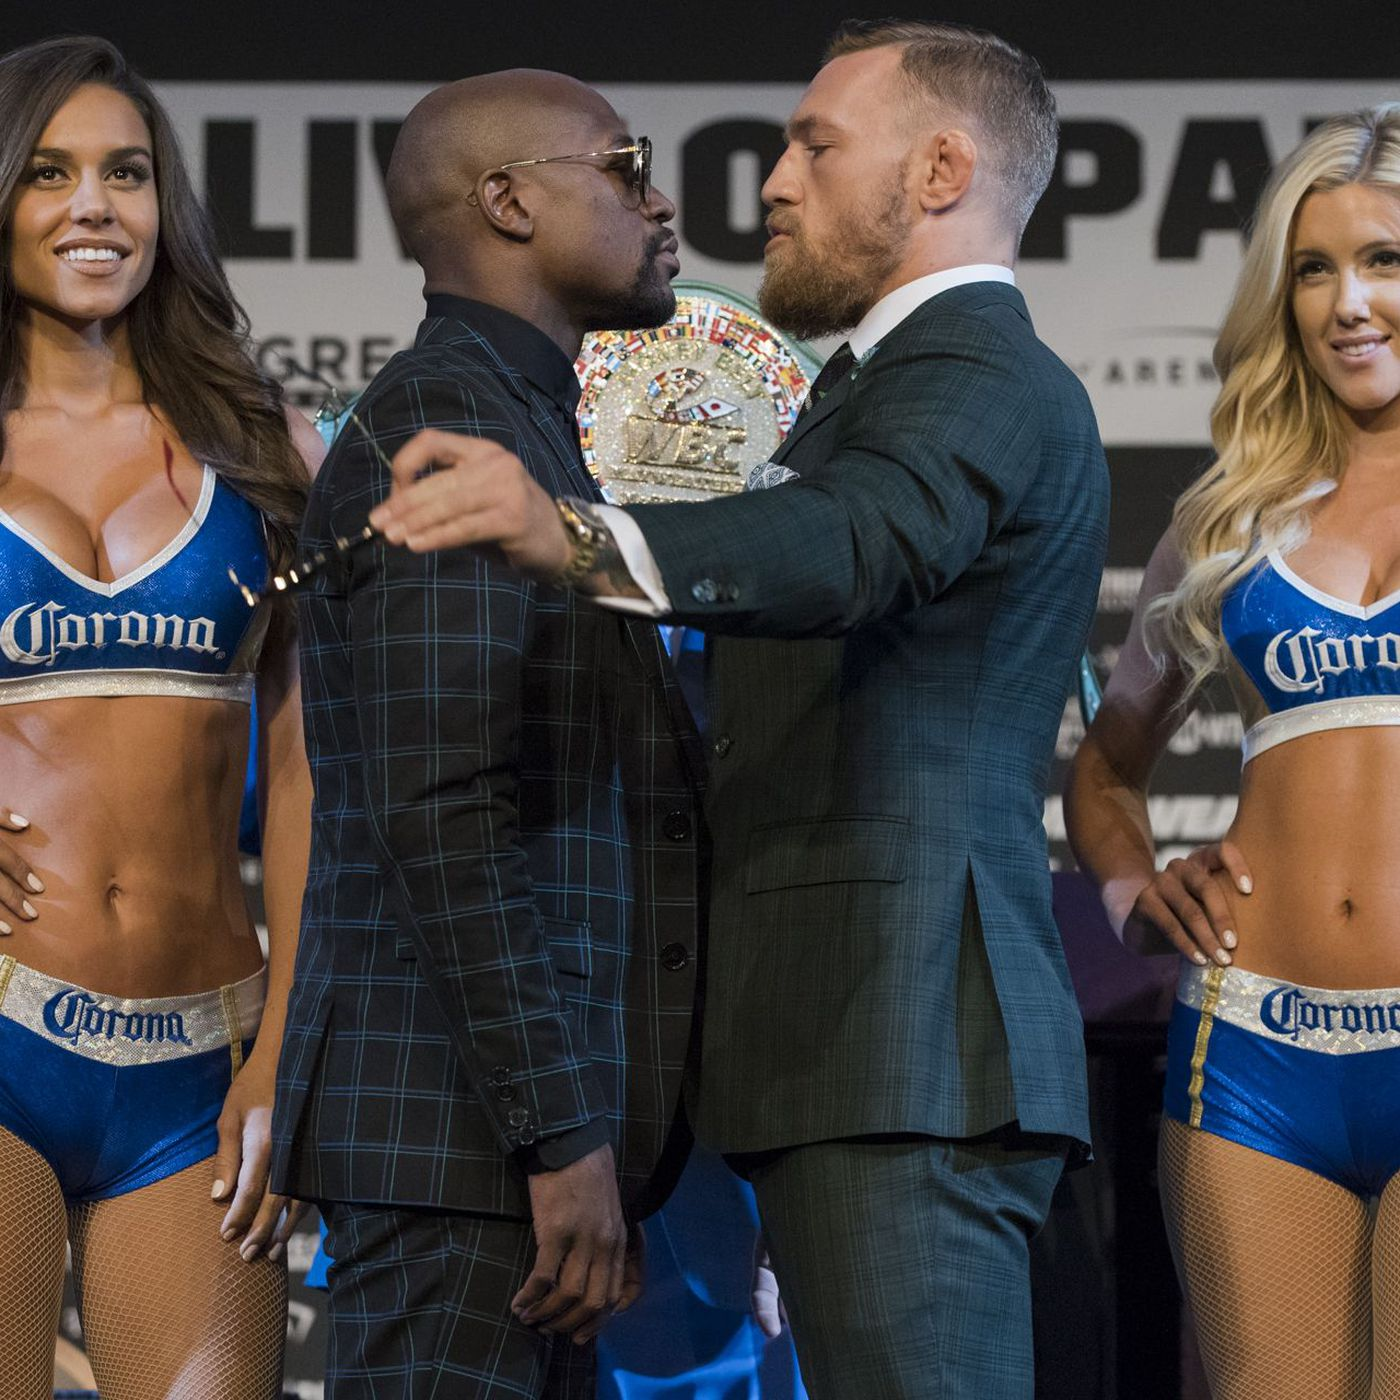 can i bet on mcgregor mayweather fight at ameristar casino